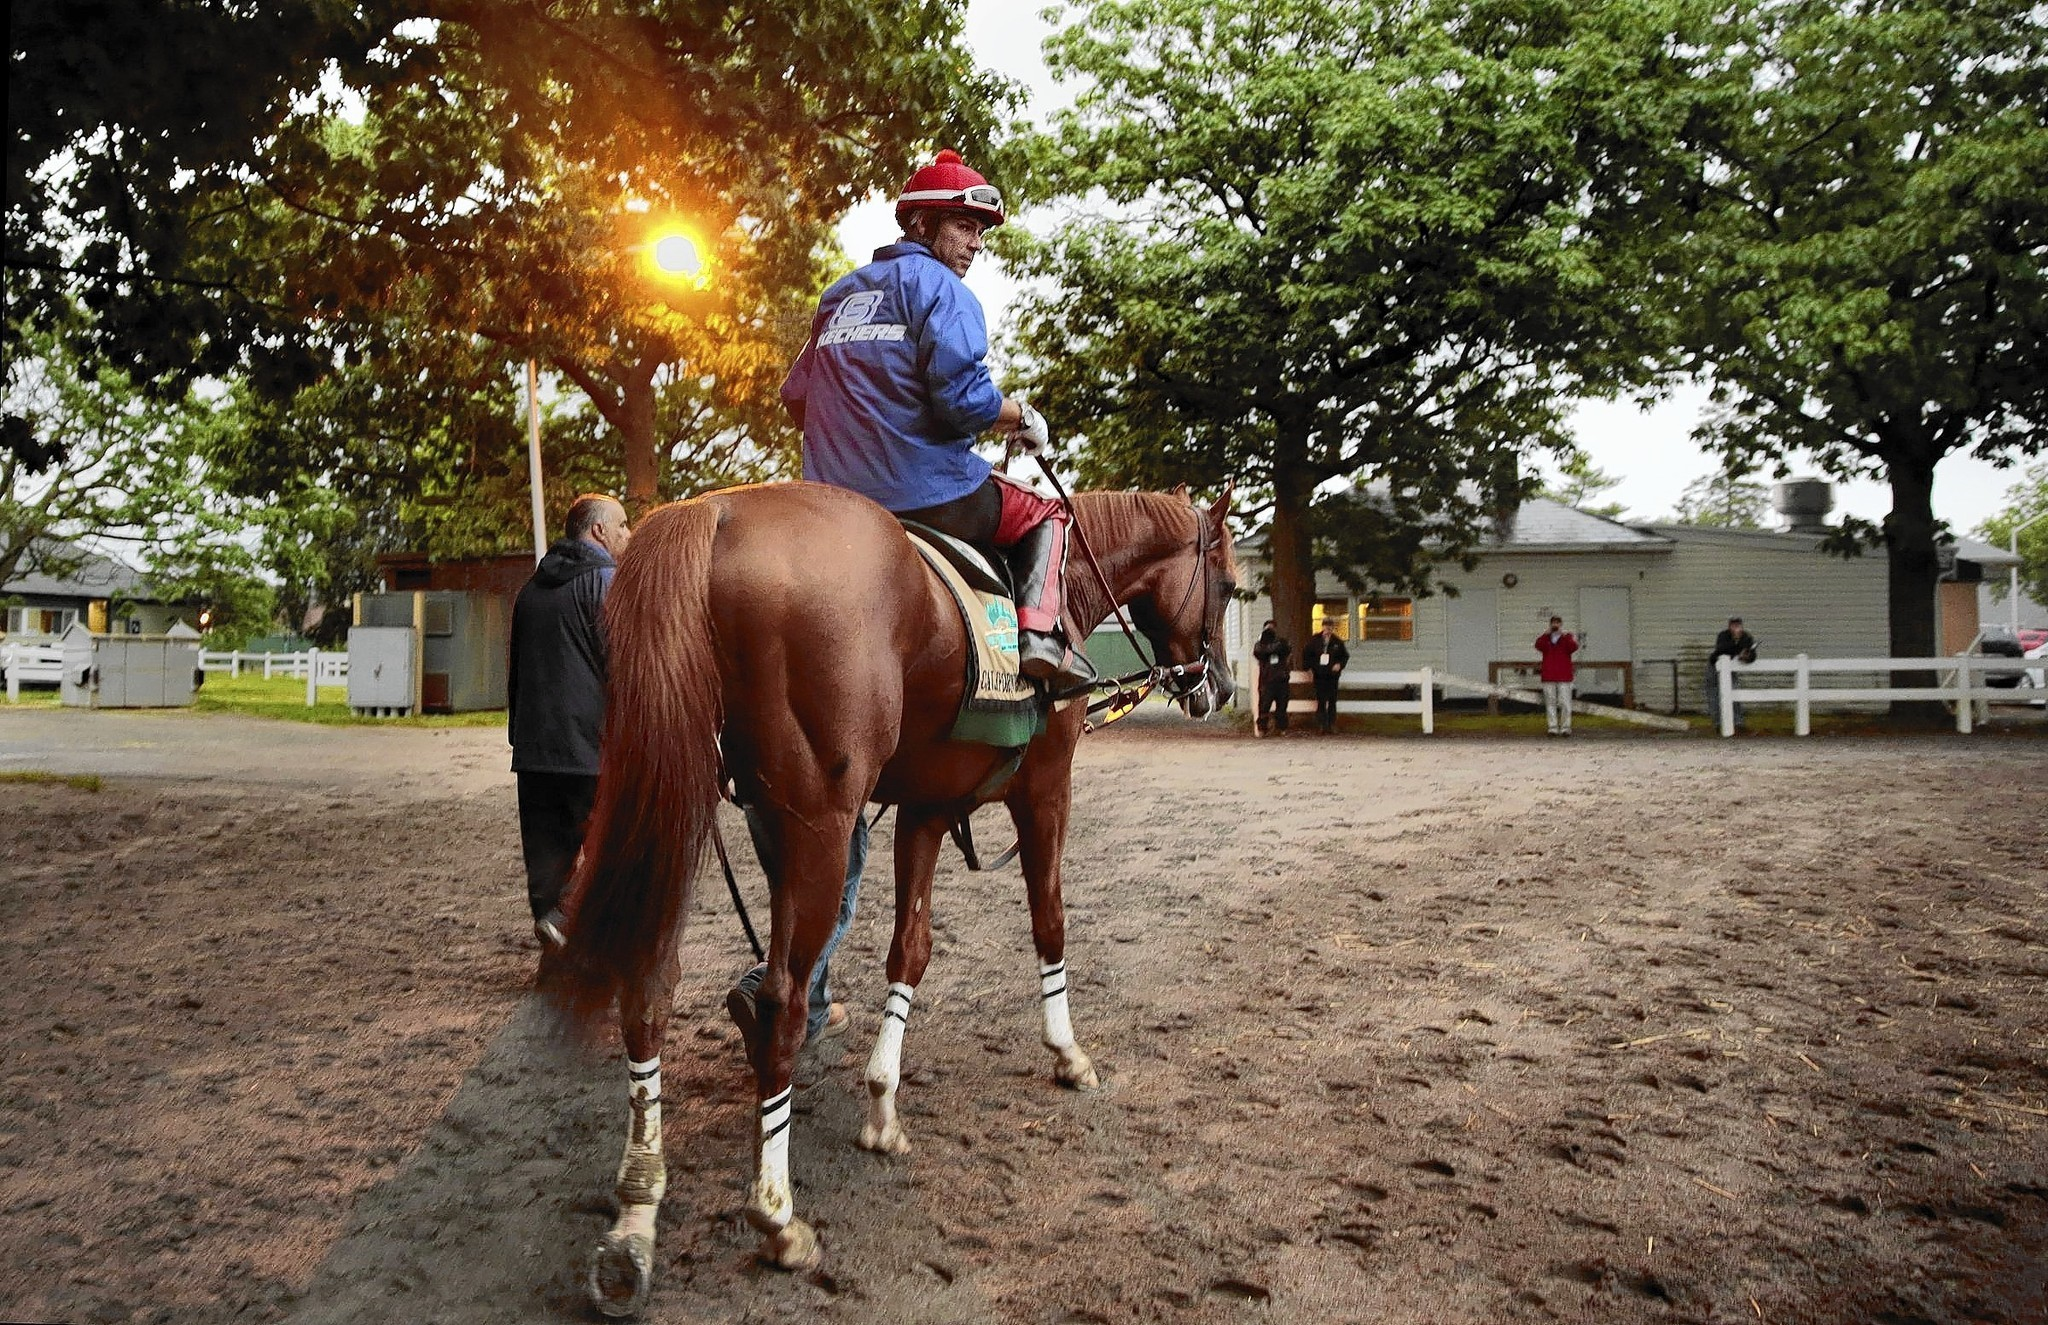 Belmont: California Chrome's run at history has hometown breathless